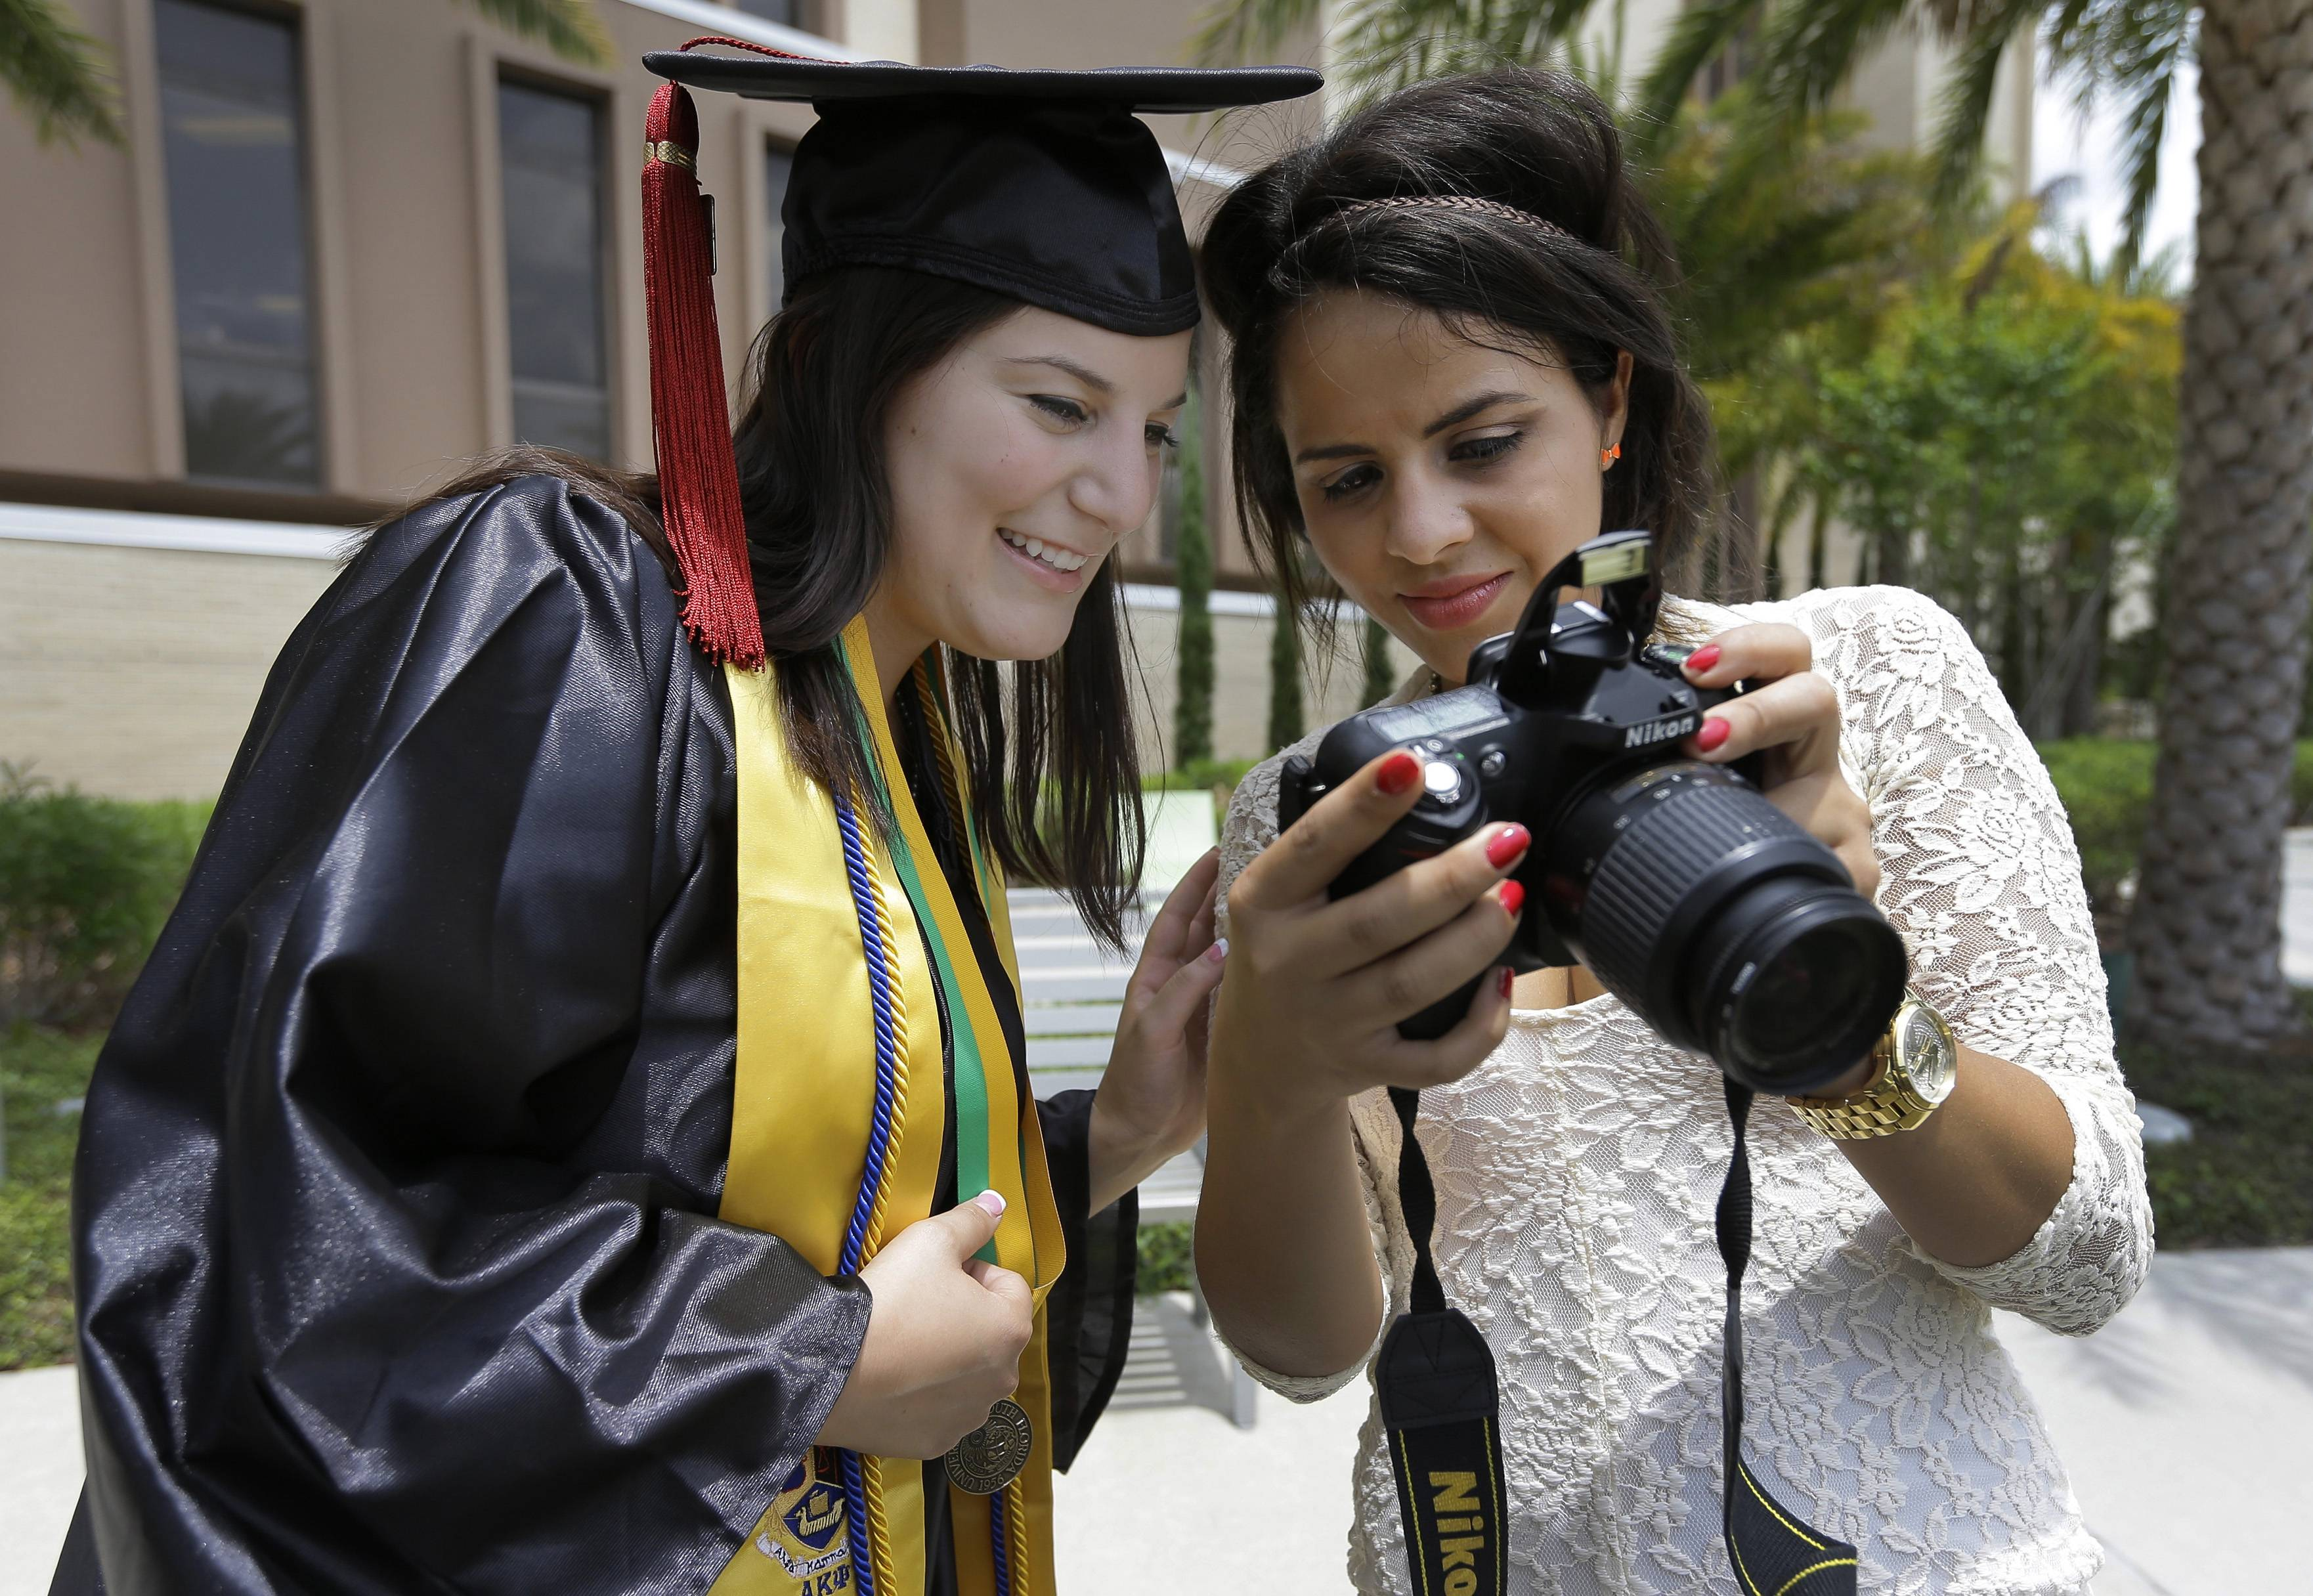 University of South Florida graduating seniors Kyra Ciotti, 22, of Tampa, Fla., left, and Rita Sibaja, 24, of Winter Haven, Fla., look at photos that Rita took of Kyra in her cap and gown Tuesday, April 29, 2014, in Tampa, Fla. The university has banned graduates from taking selfies while on the stage to collect their diplomas during graduation exercises.